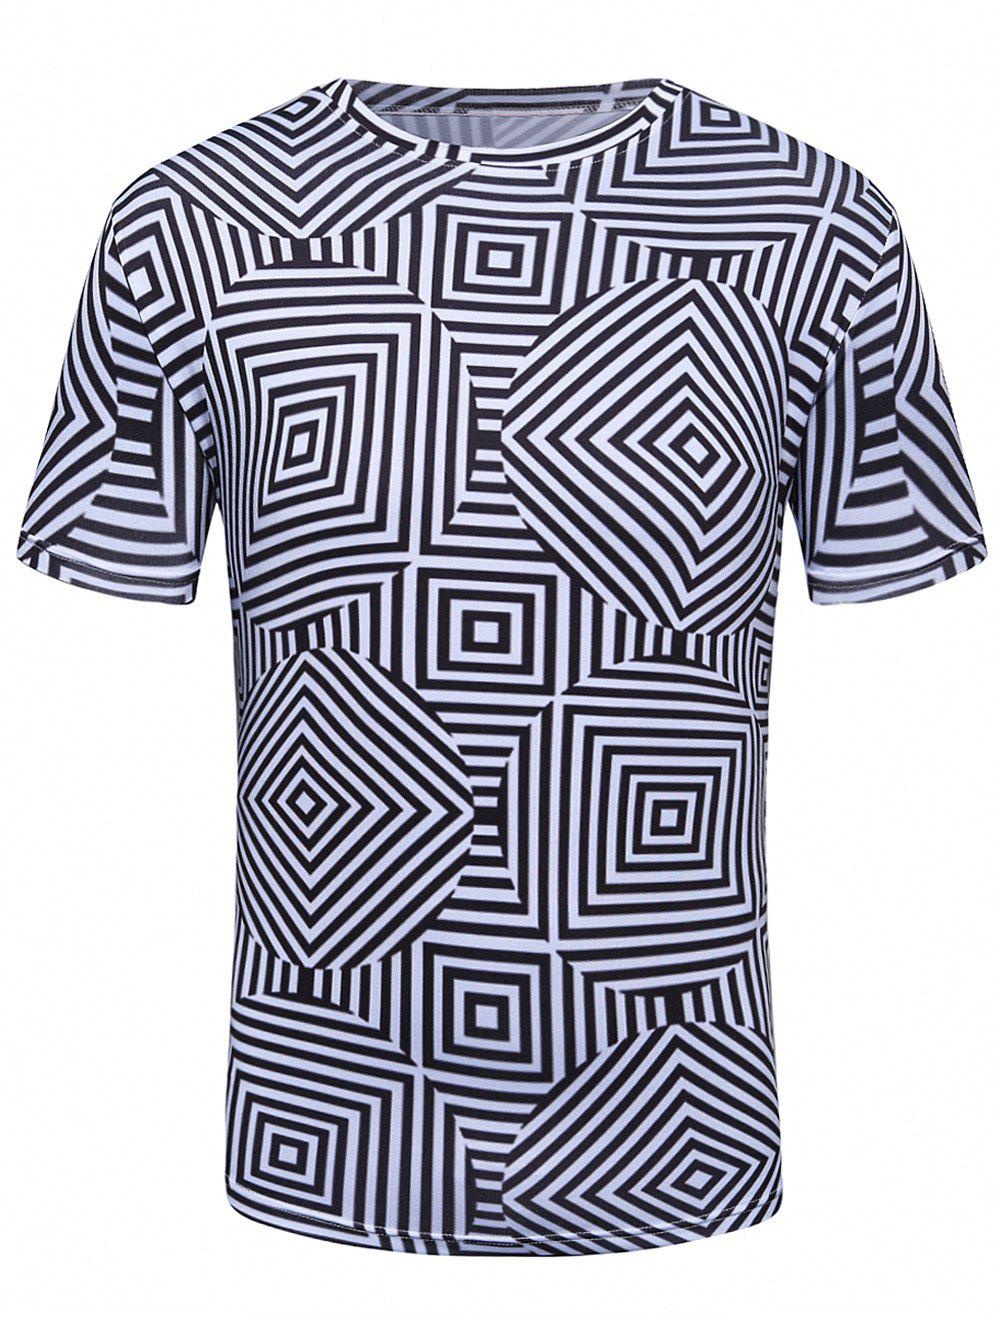 Short Sleeve 3D Labyrinth Geometric Trippy T-Shirt - COLORMIX XL